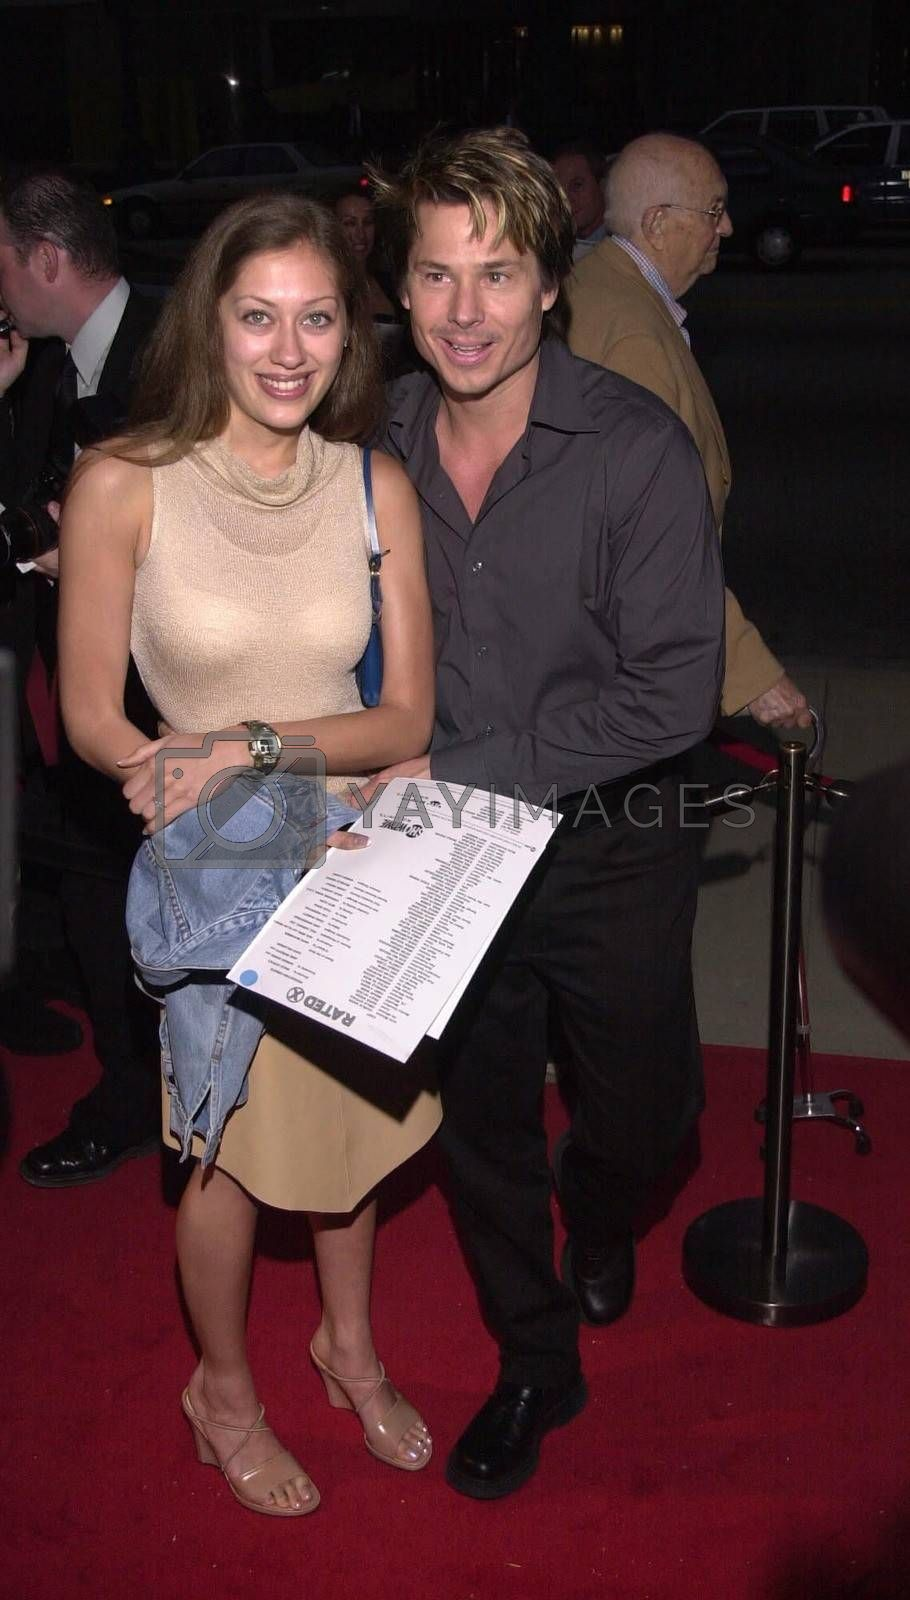 """Kato Kaelin and date Alana at the premiere of Showtime's """"RATED X"""" in Hollywood, 04-27-00"""